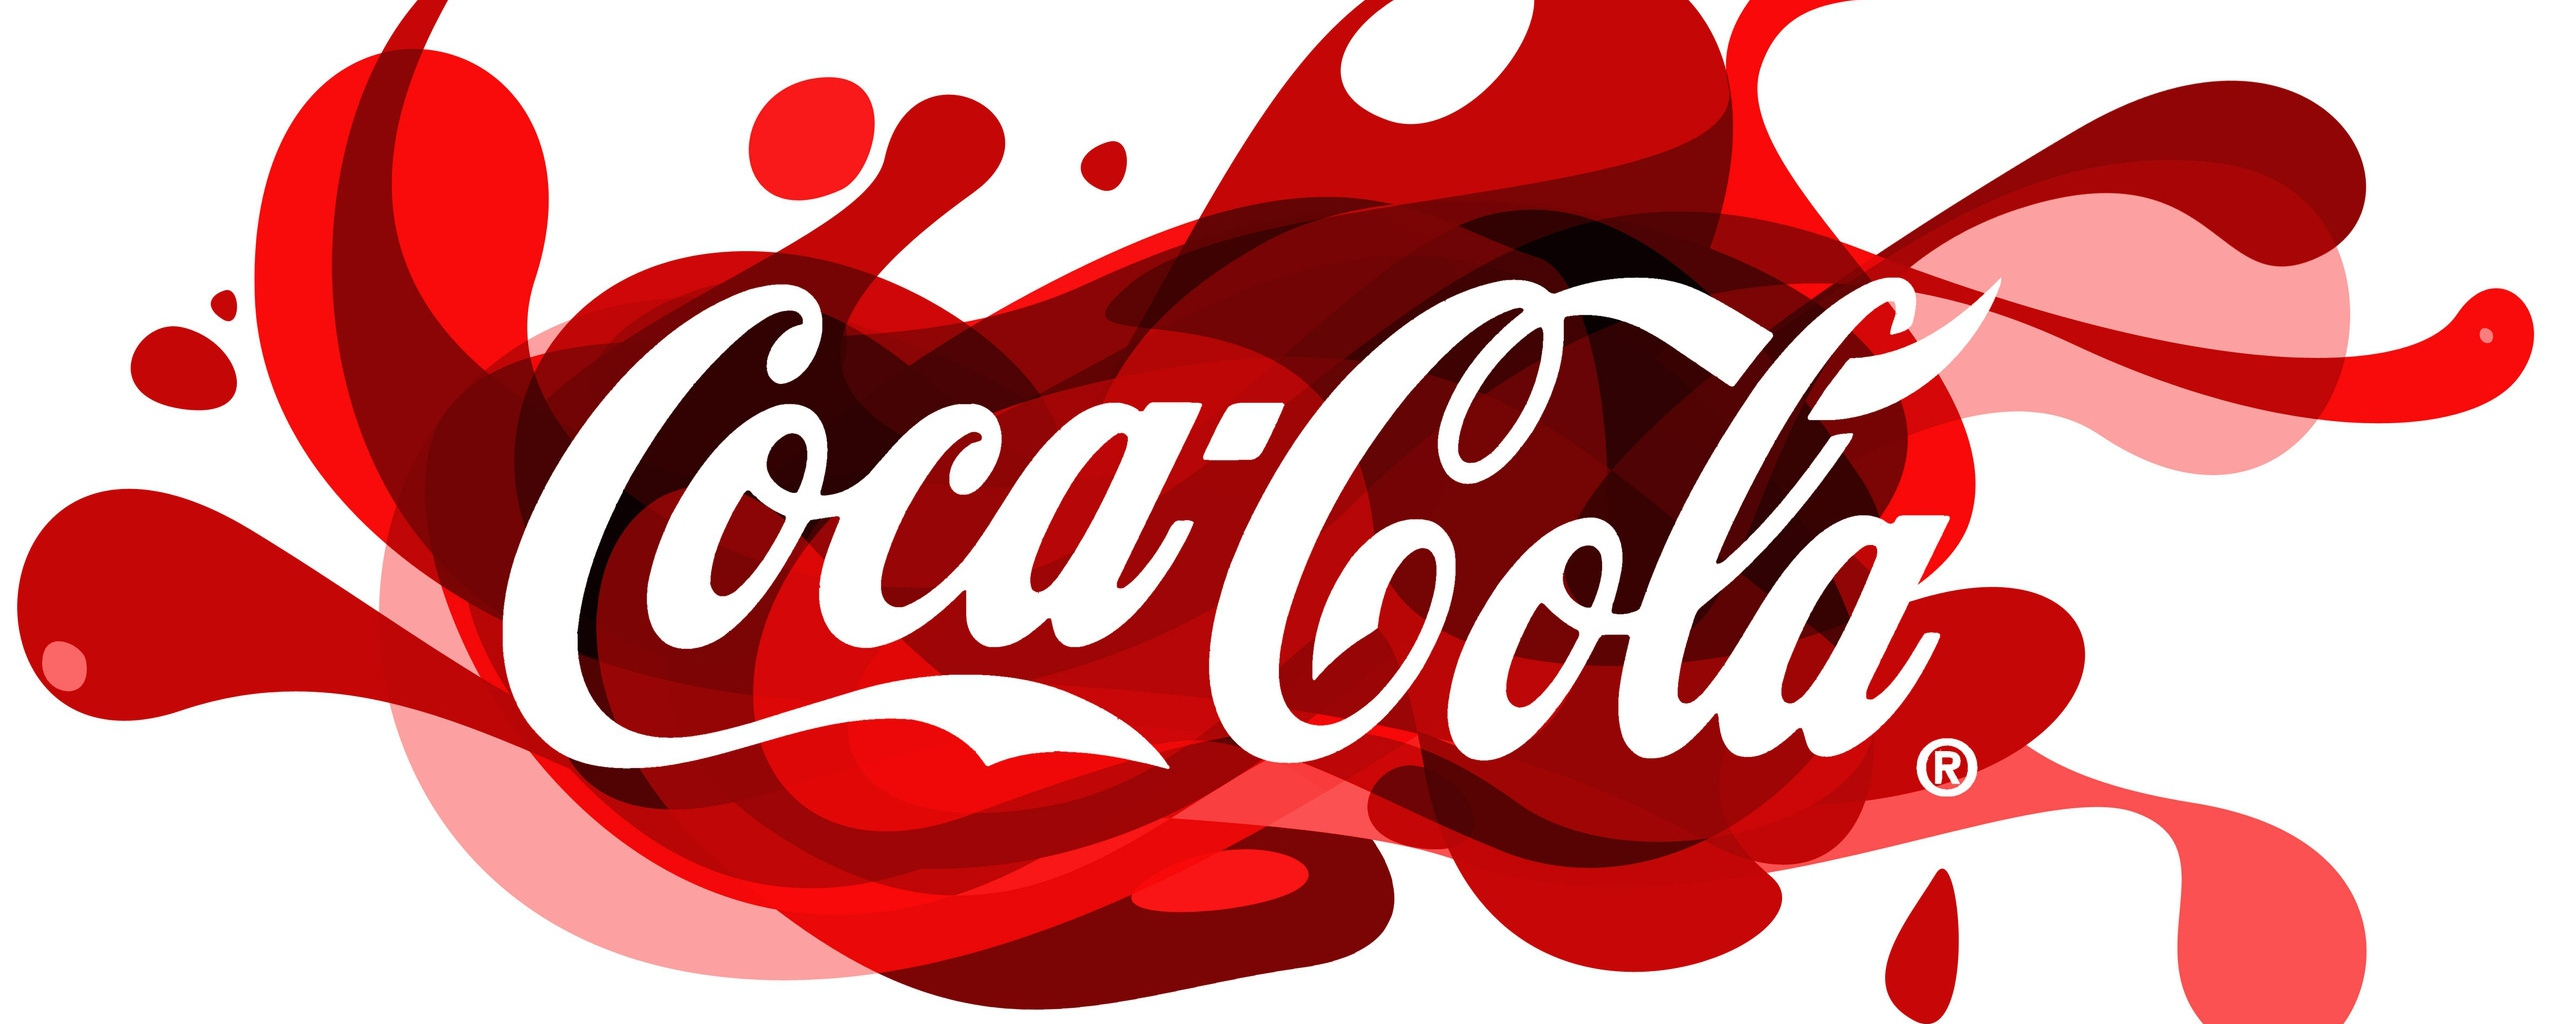 2560x1024 Wallpaper coca-cola, brand, logo, patches, drink, firm